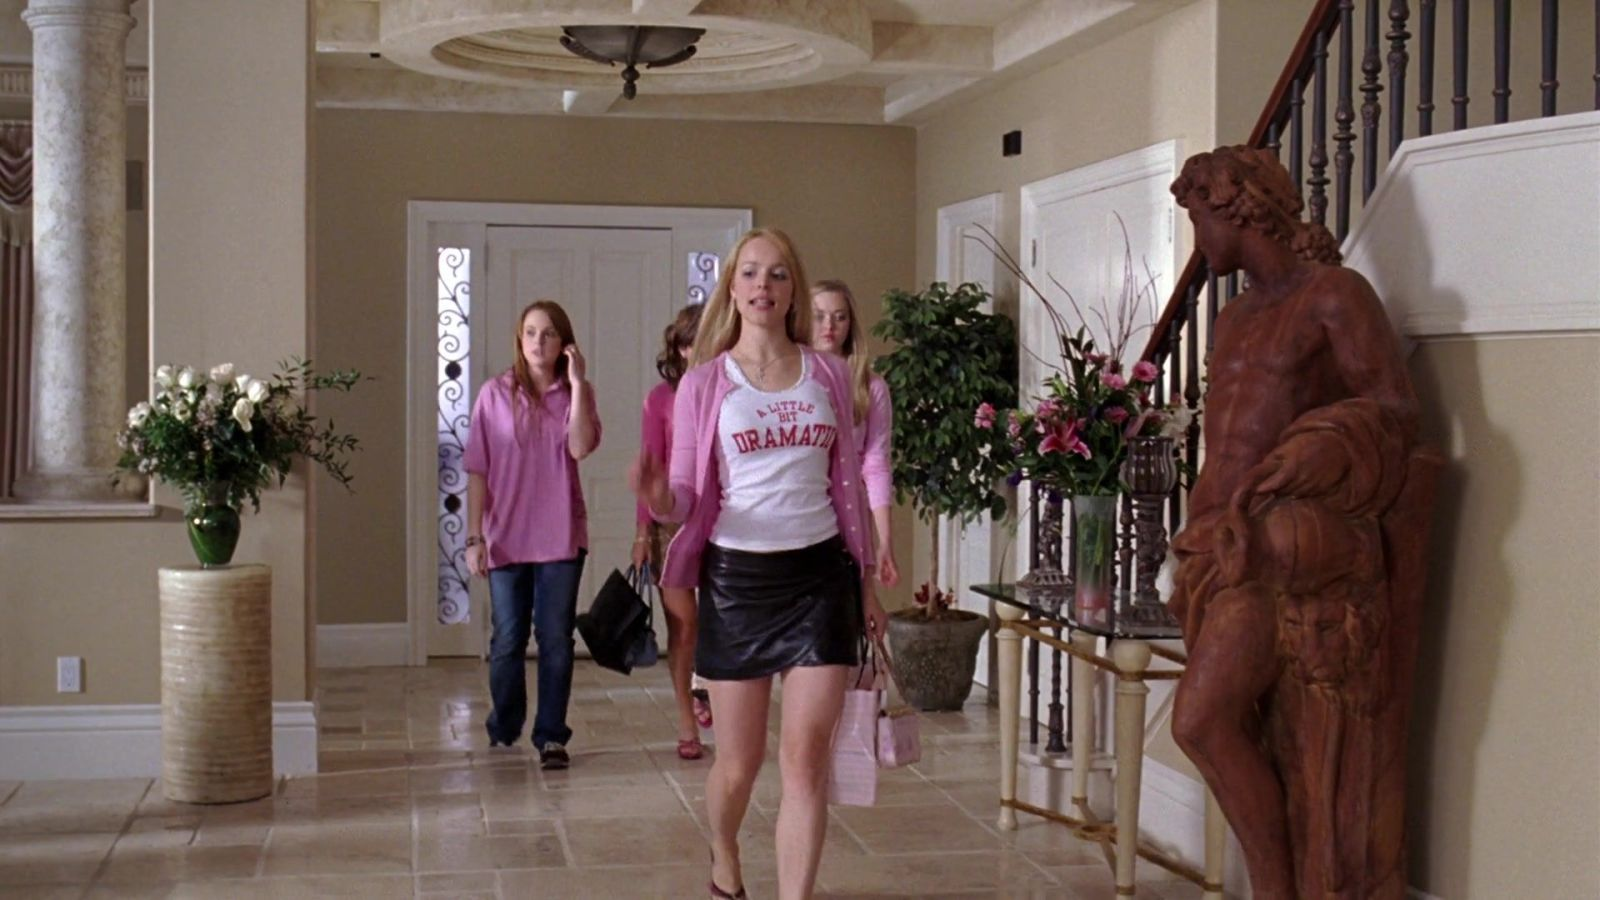 Want to live in Regina George's 'Mean Girls' mansion? It's totally fetch.